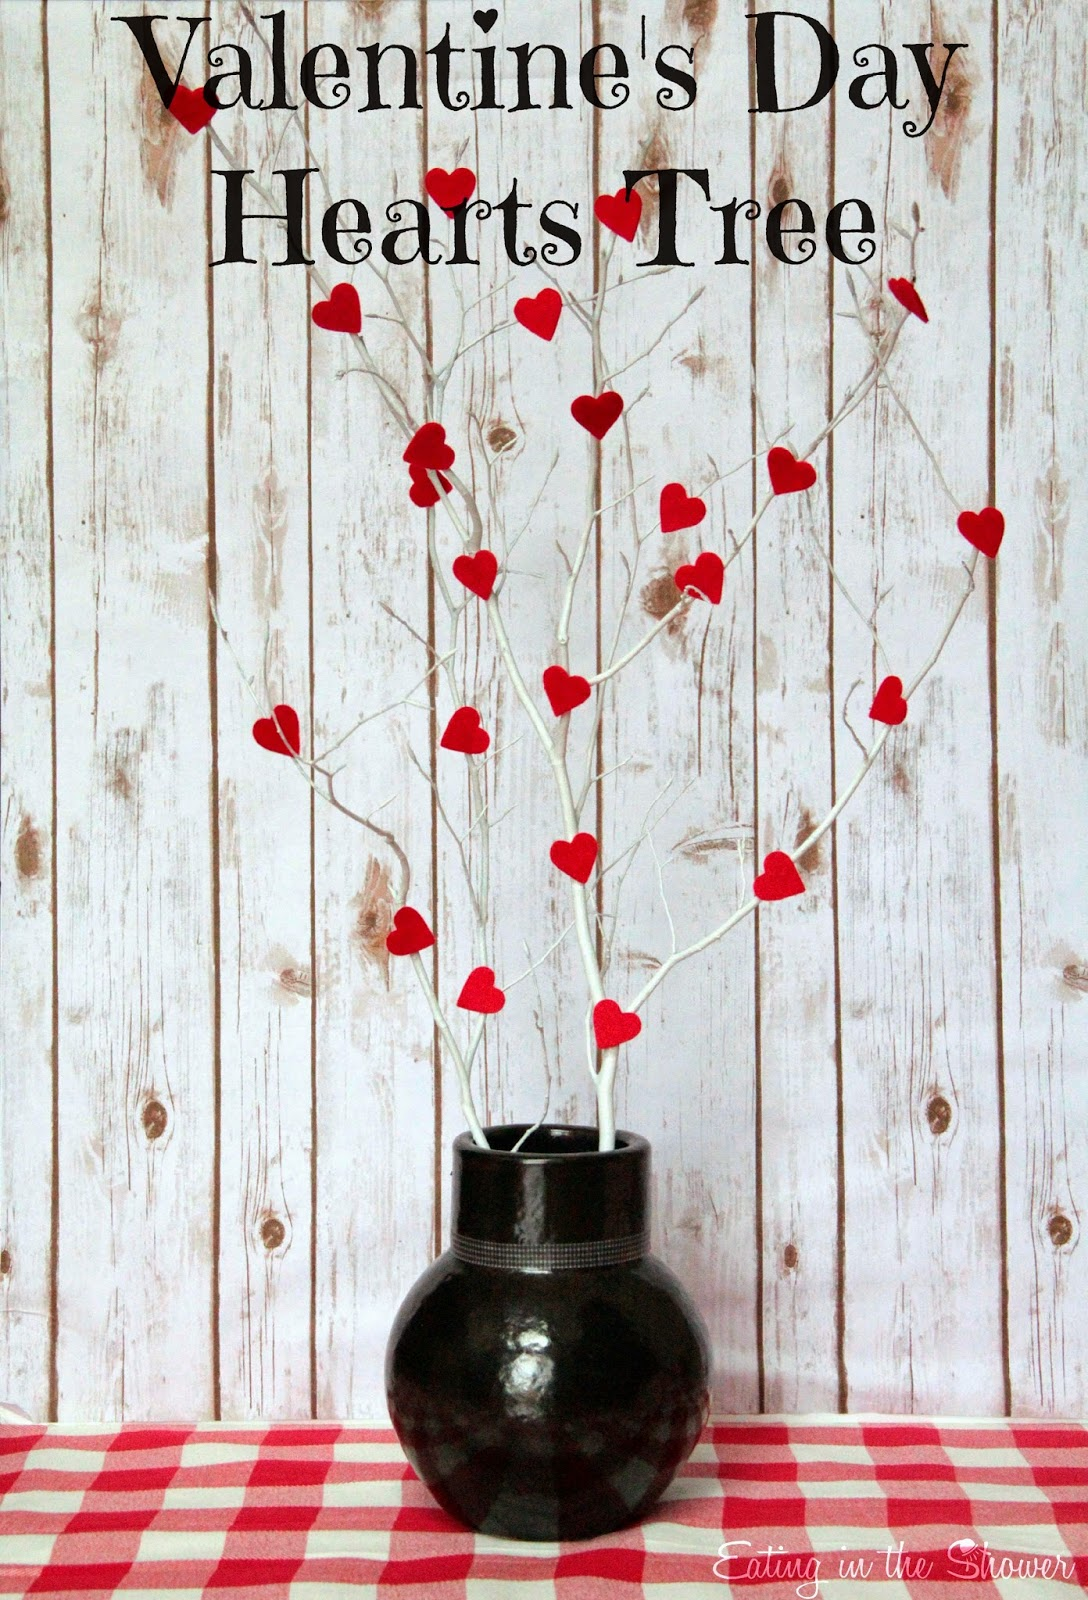 Valentine's Day Hearts Tree